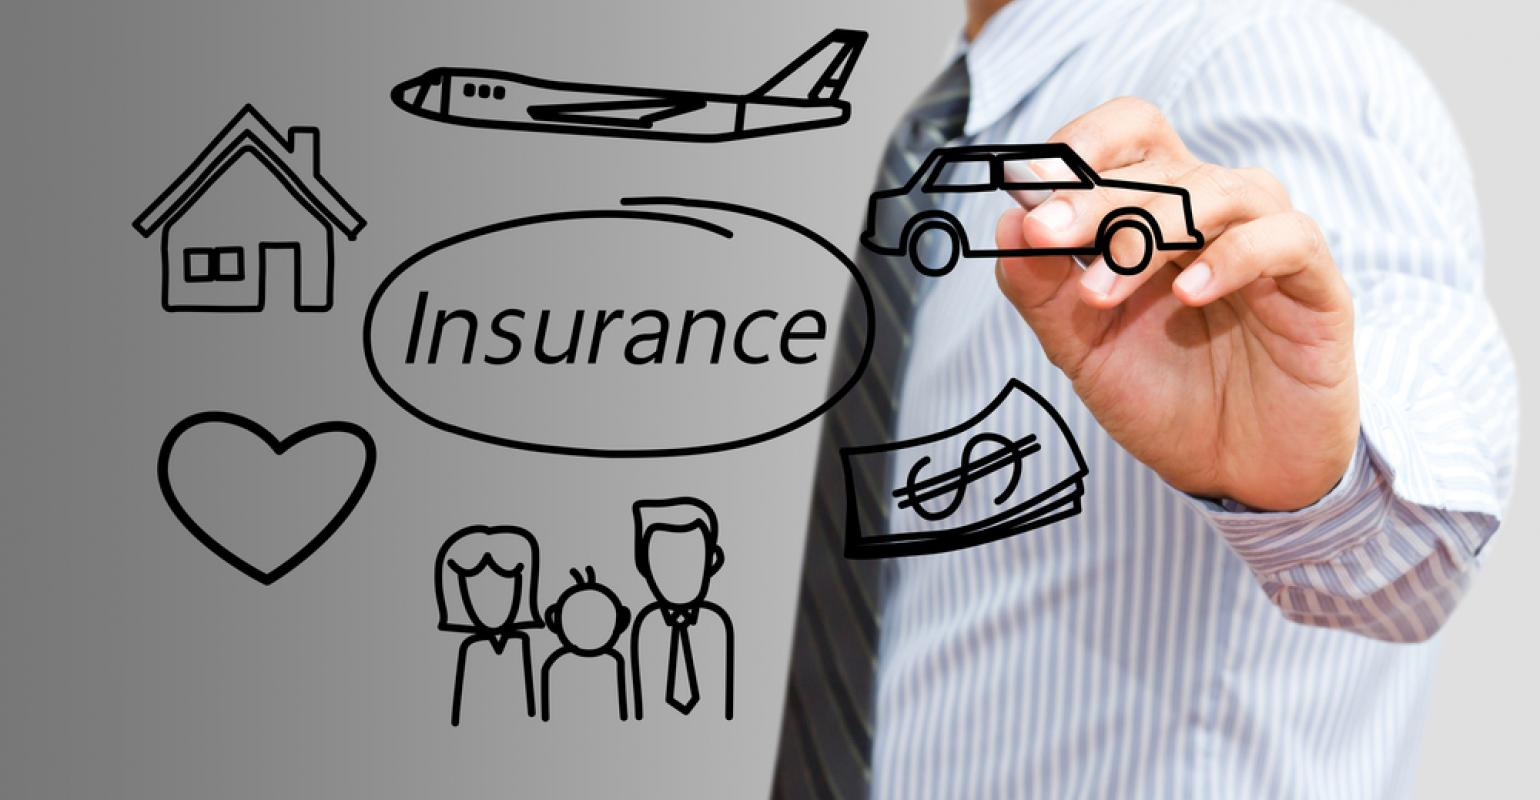 Reinsurance Buyers - Three Mistakes That Can Cost You Big Money When Buying Reinsurance